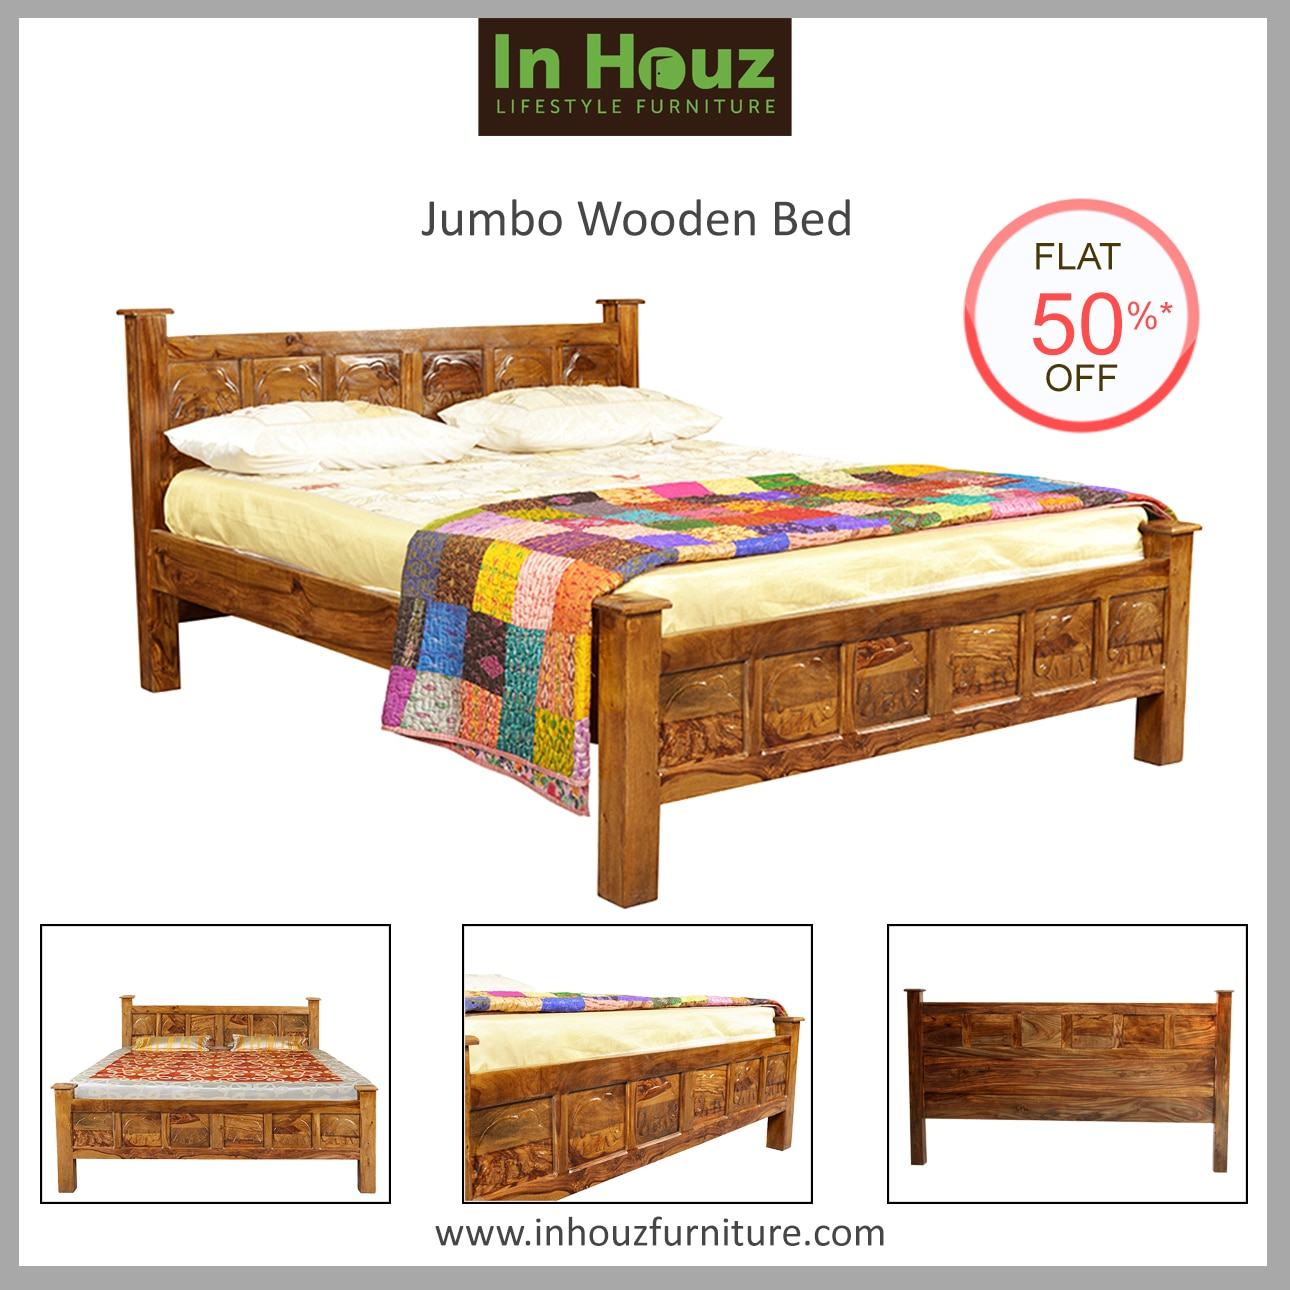 Beautify your Bedroom Decor & give yourself a Kingly feel with our royal & alluring Designs of Double Beds.  #Bedroom #BedroomFurniture #Beds #BedDesign #SheeshamwoodBeds #BedsOnline #SolidwoodBeds #FurnitureShoppingOnline #Inhouz #Inhouzfurniture #SolidwoodBeds #HardwoodBeds #OnlineSolidwoodBeds #BuyFurnitureInHyderabad  Order now www.inhouzfurniture.com